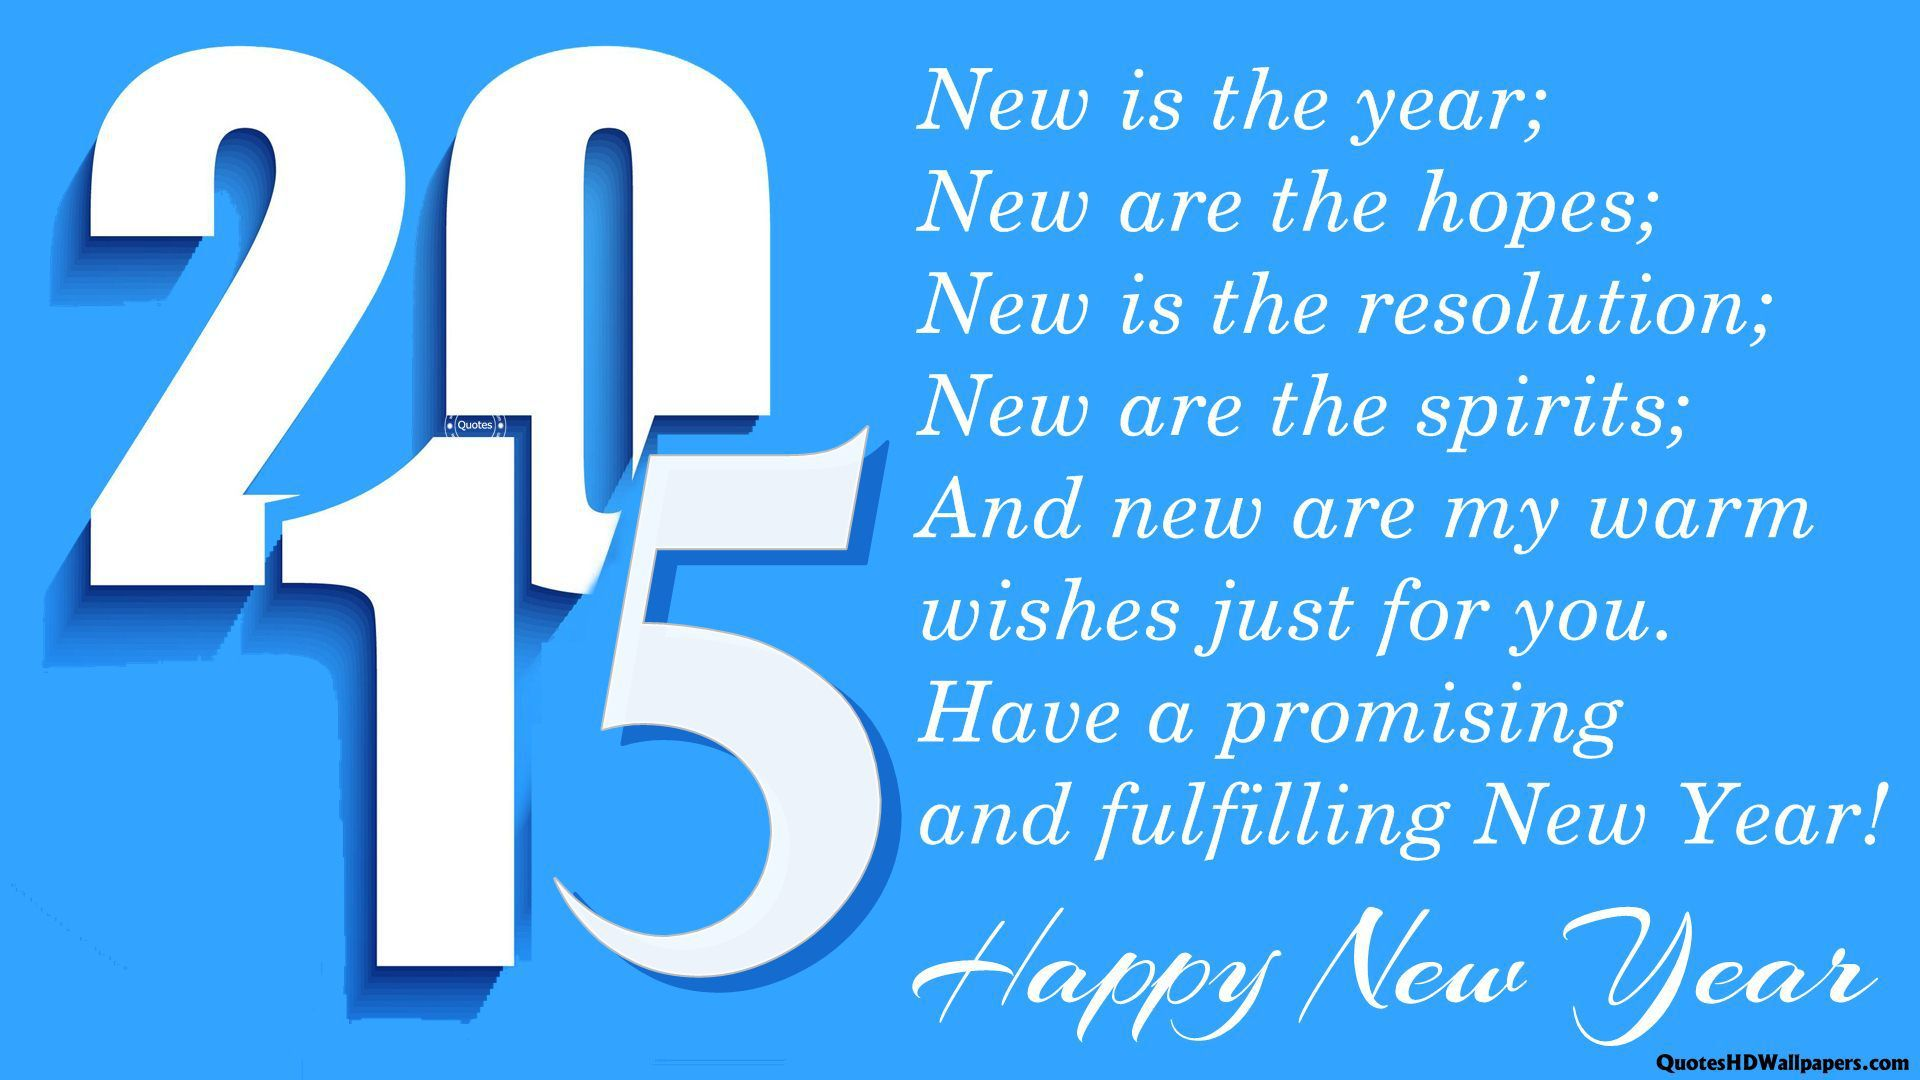 Happy New Year 2015 Greetings Wallpaper 6717 Wallpaper computer 1920x1080